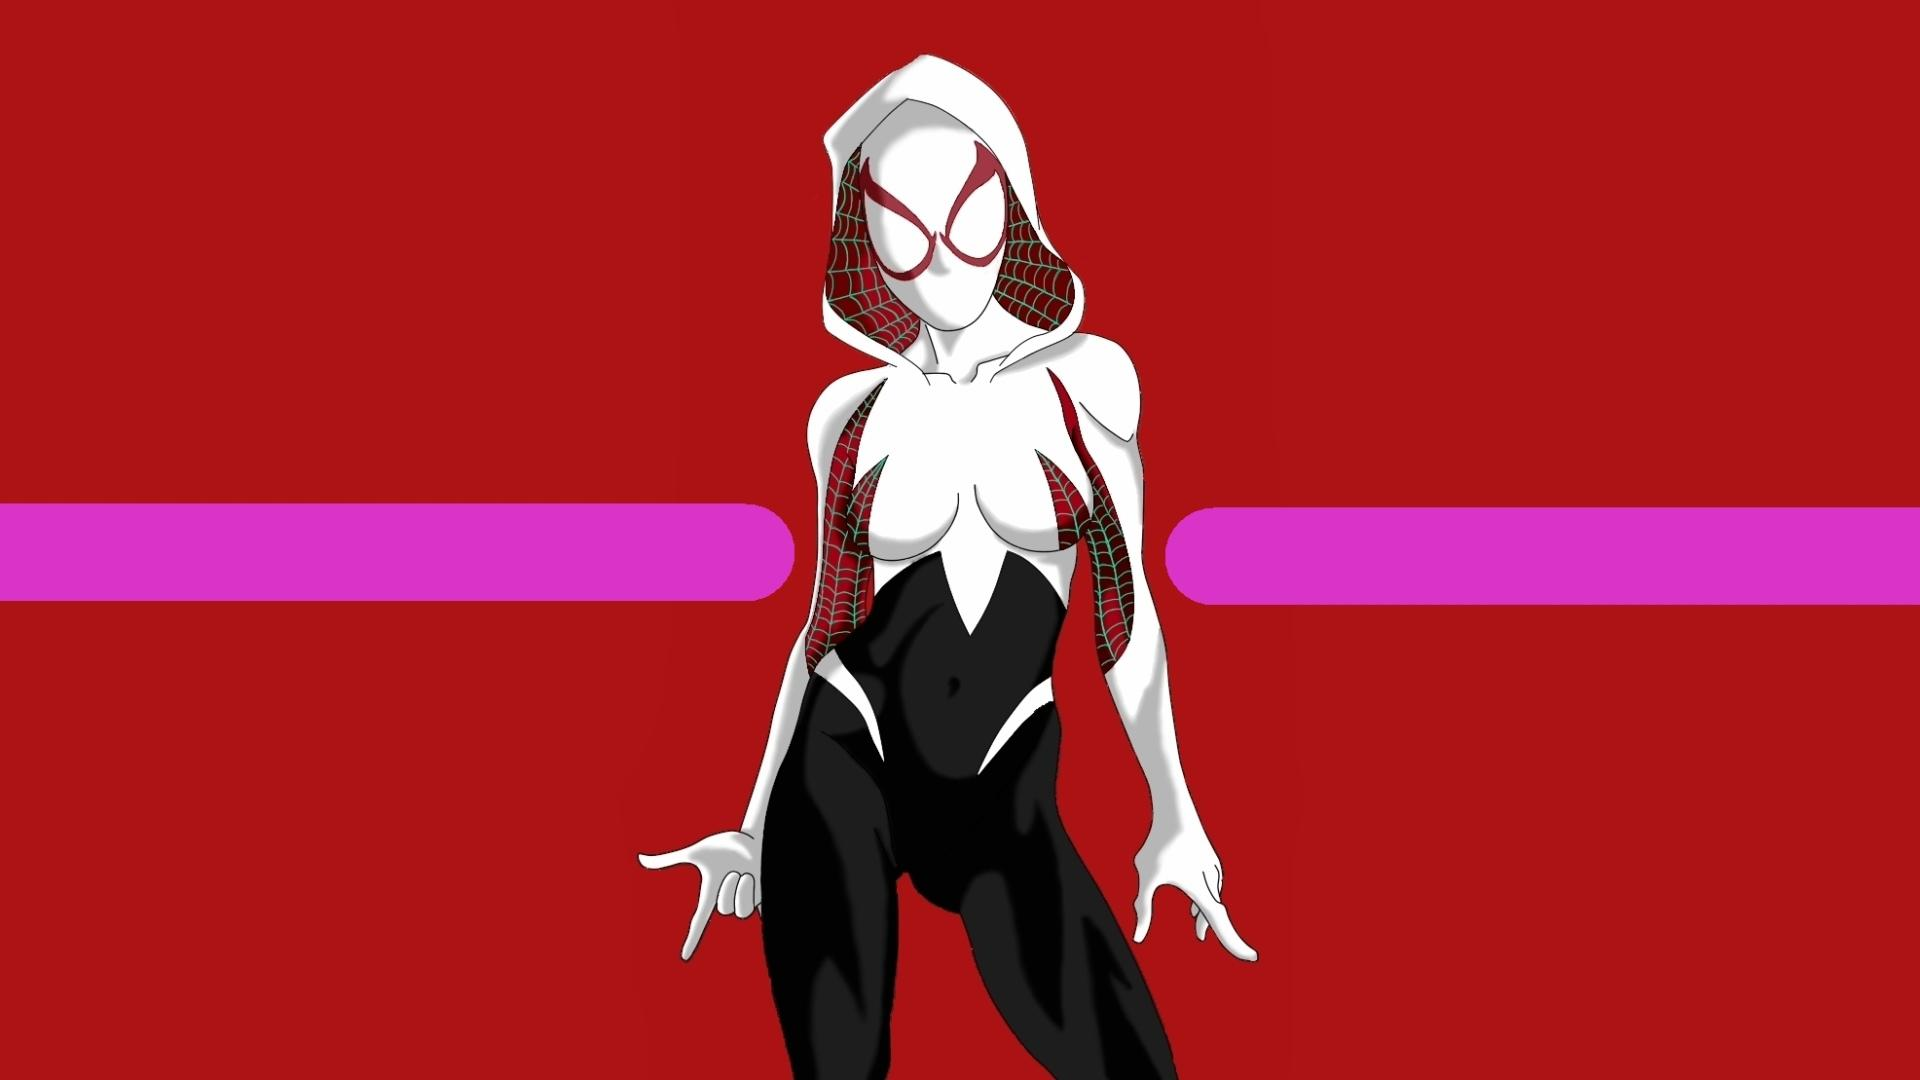 Spider-Gwen Comics wallpapers HD quality